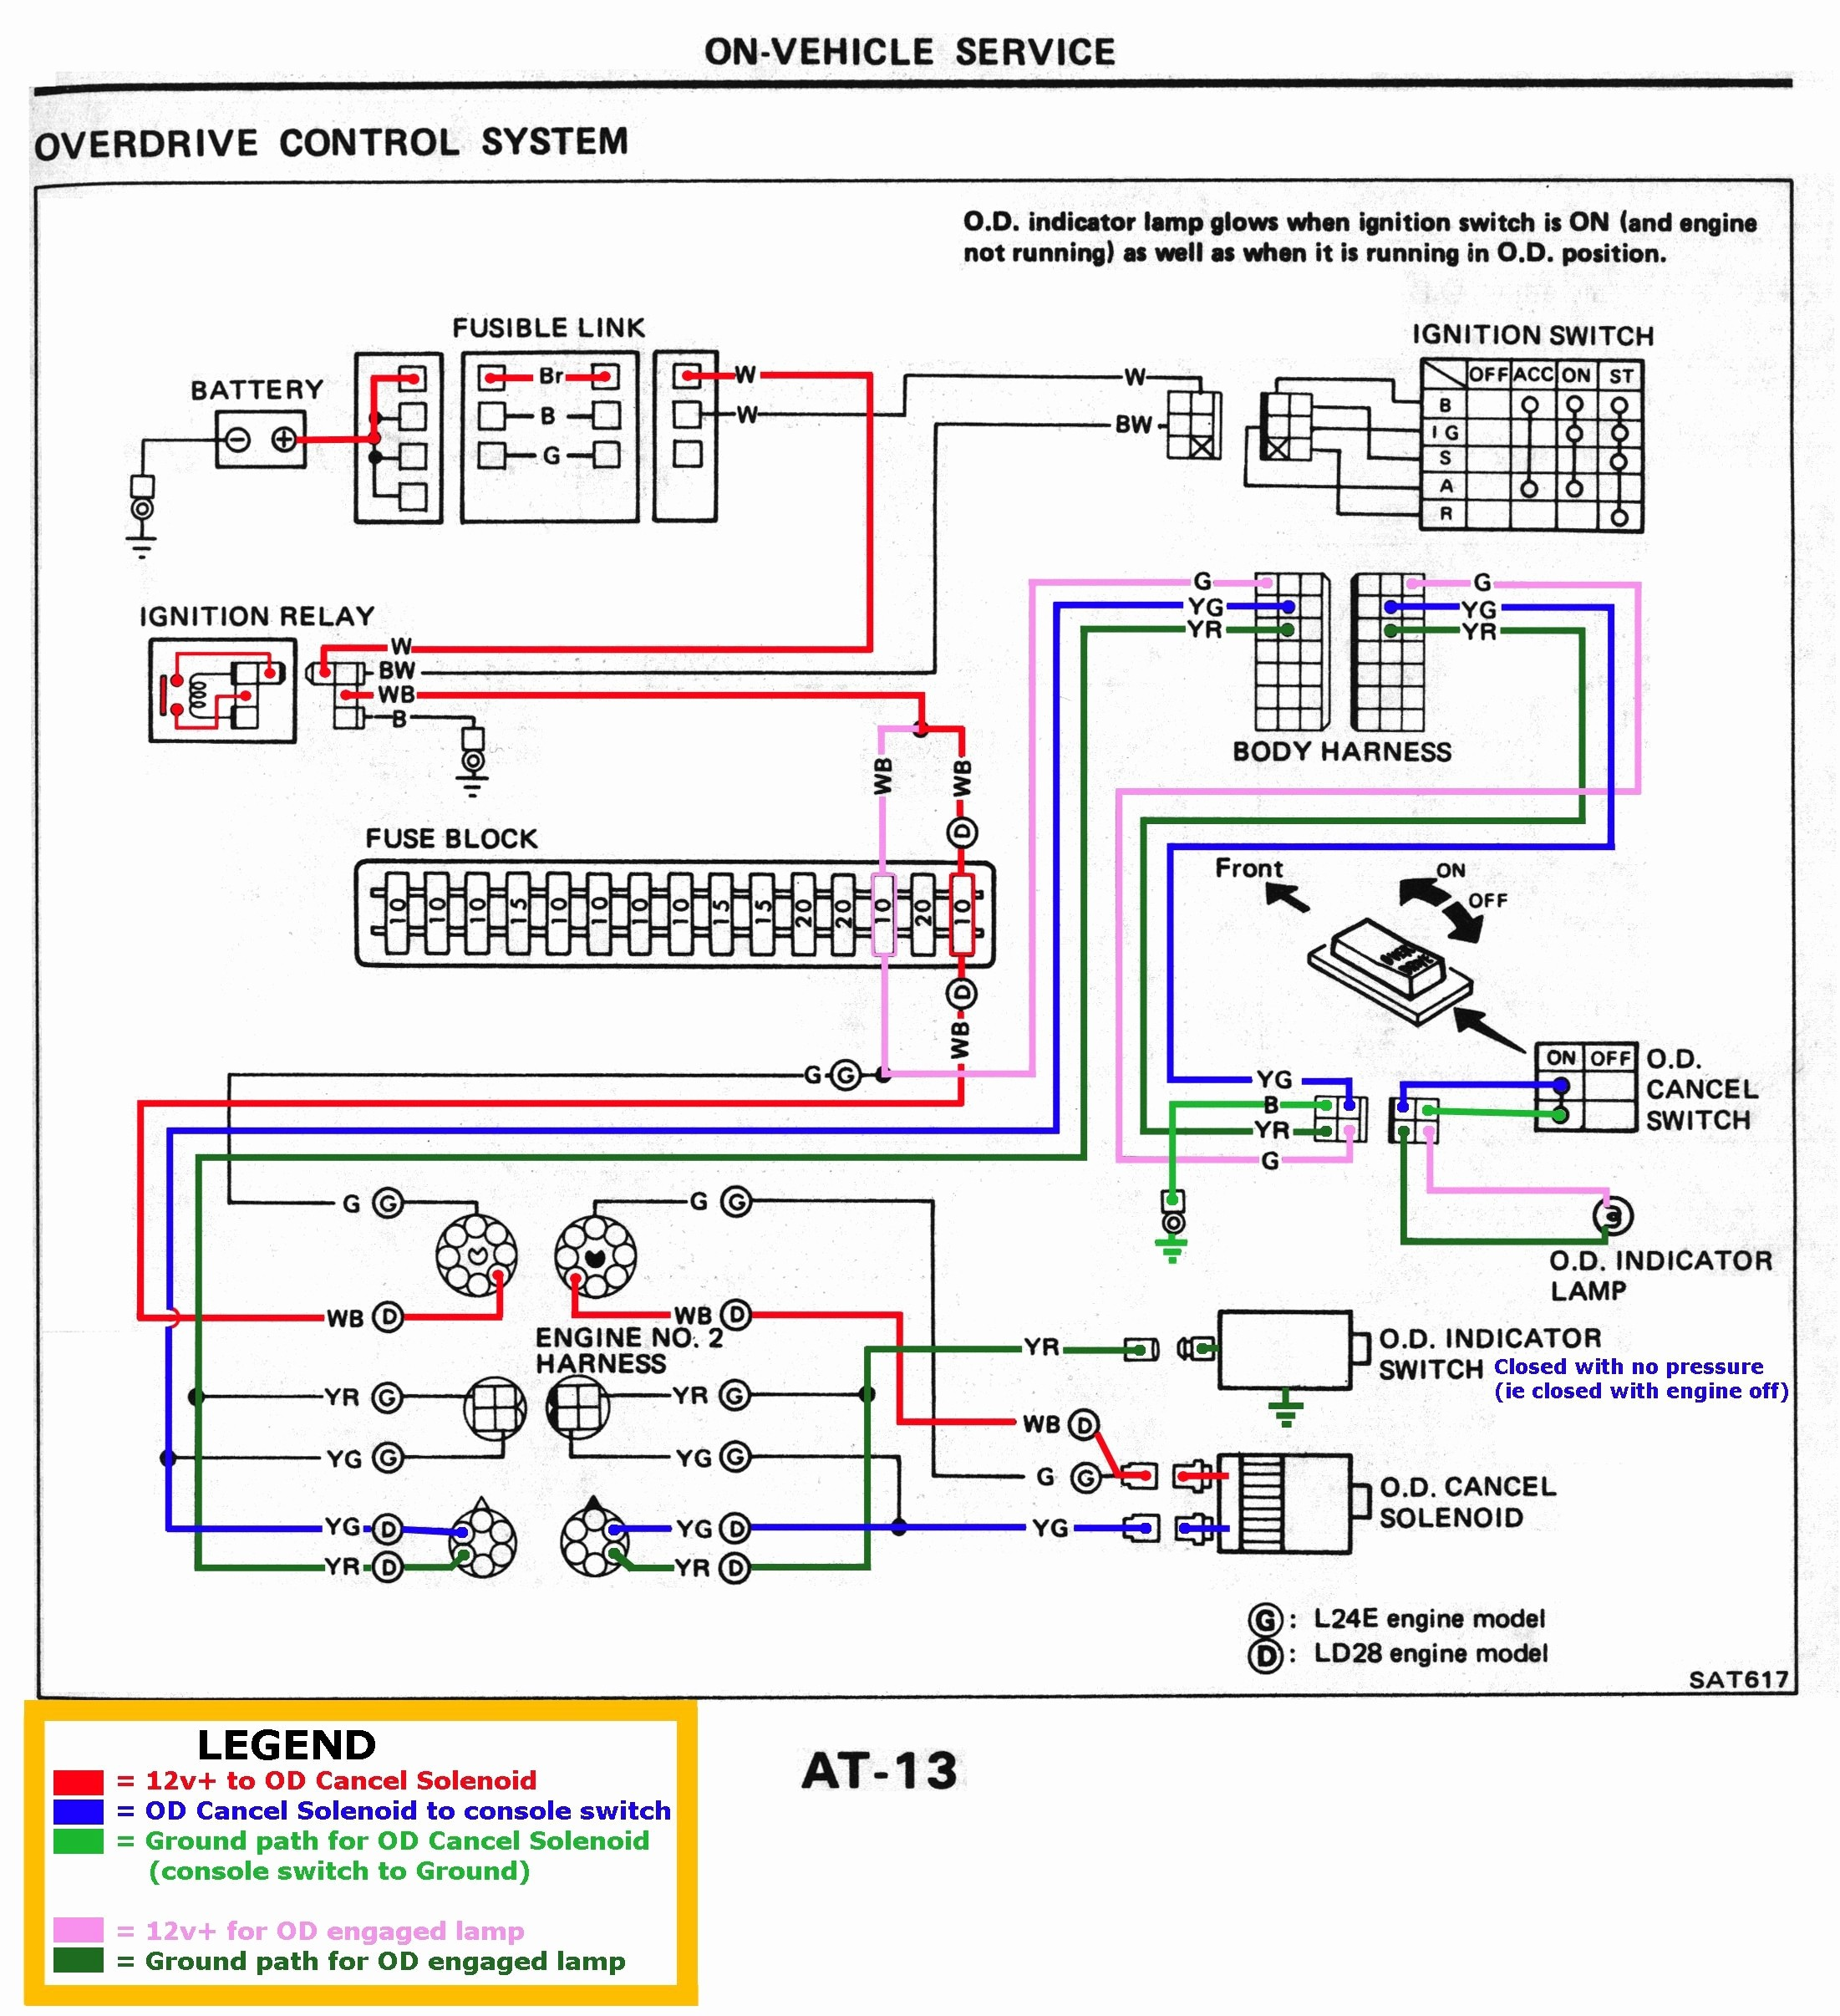 Oex Relay Wiring Diagram Save Wiring Diagram Square D Pressure Switch Wiring Diagram Awesome Xmp